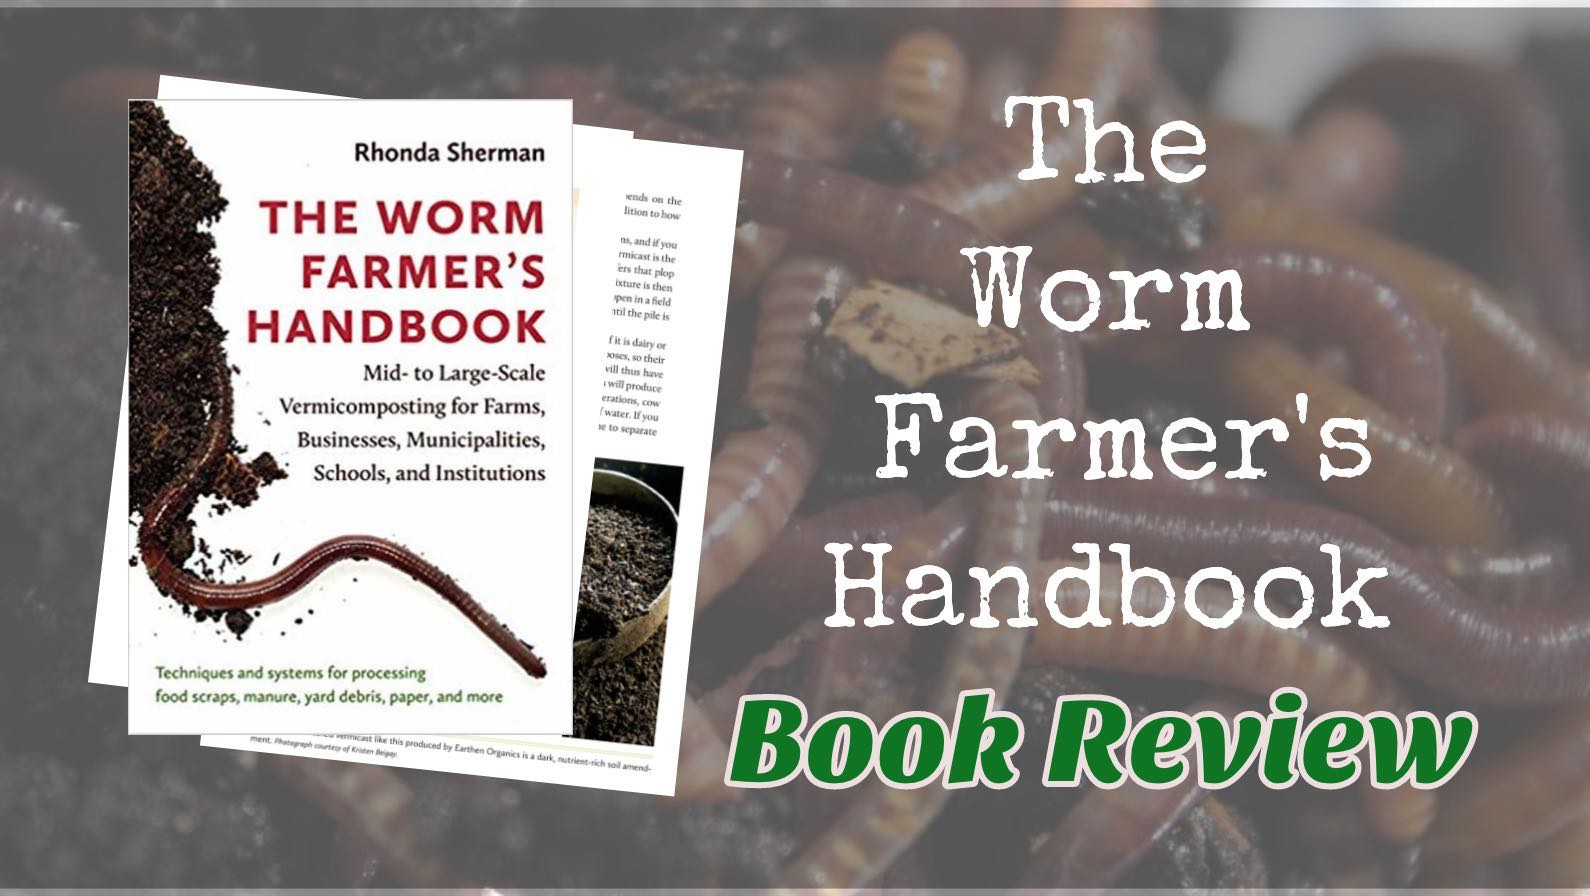 The Worm Farmer's Handbook: A Must-Read Book for Operating at Scale